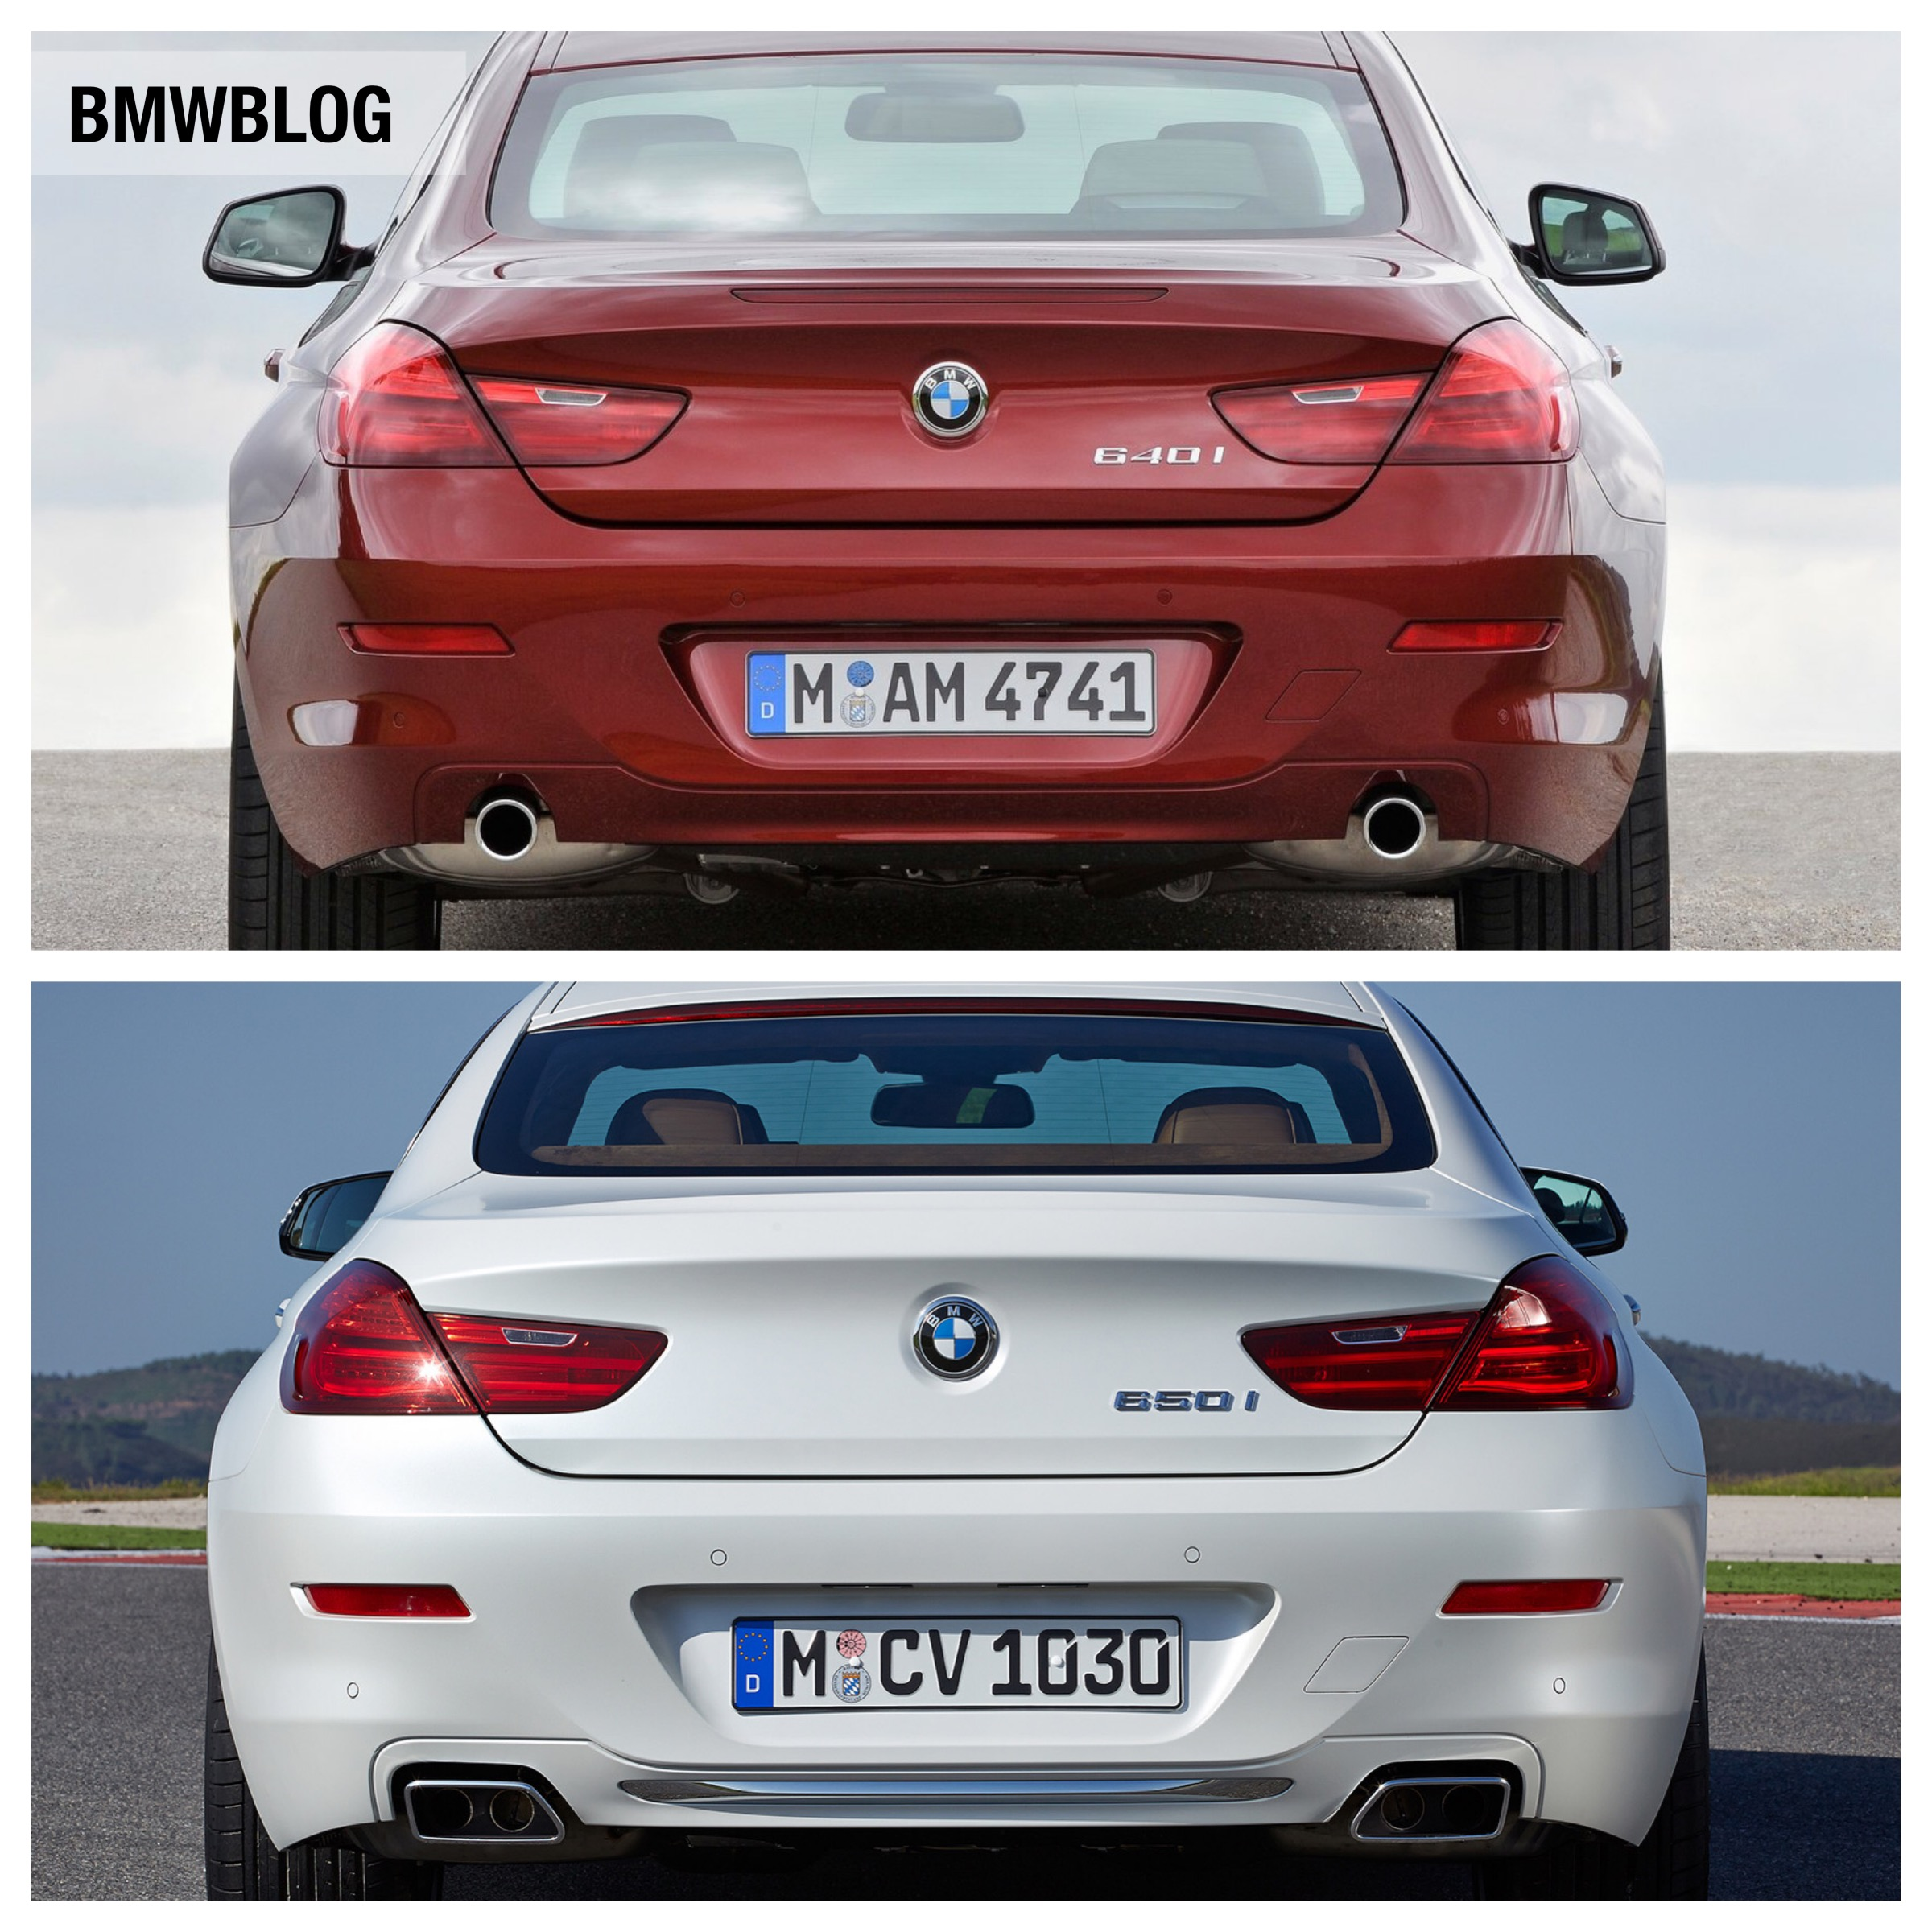 Bmw 3 Series G20 >> Photo Comparison: 2012 BMW 6 Series vs. 2015 BMW 6 Series Facelift